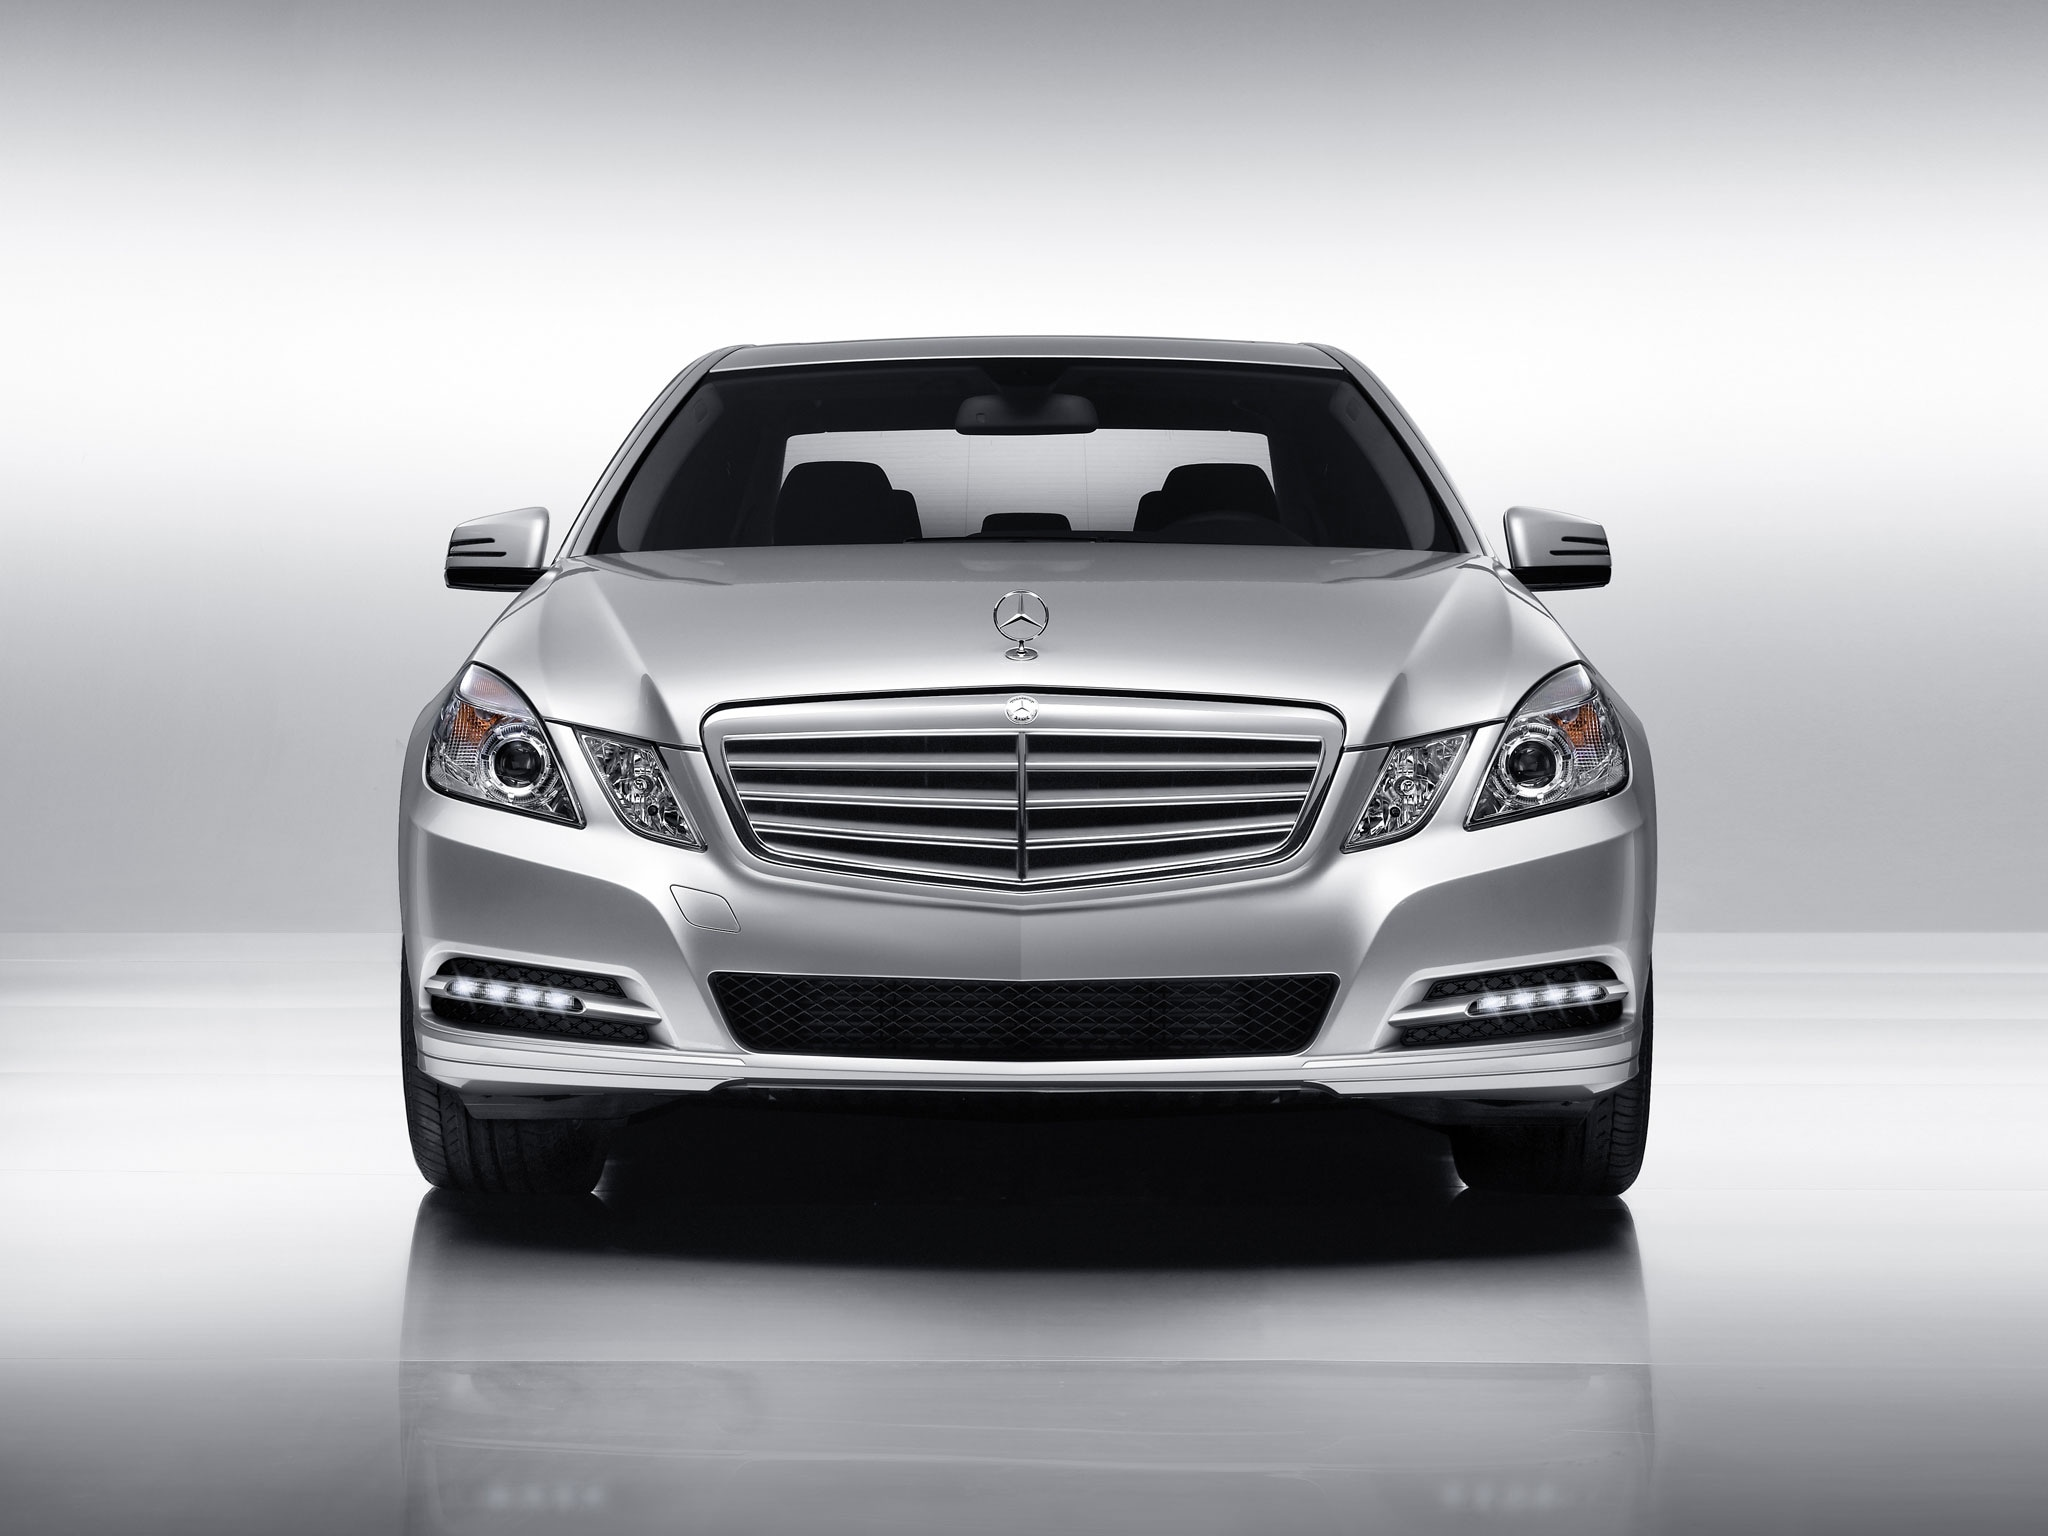 Fields motorcars mercedes benz usa releases impressive 2011 in a recent release of 2011 sales figures mercedes benz usa reported sales of 264460 vehicles the highest annual volume on record with a 175 increase thecheapjerseys Images